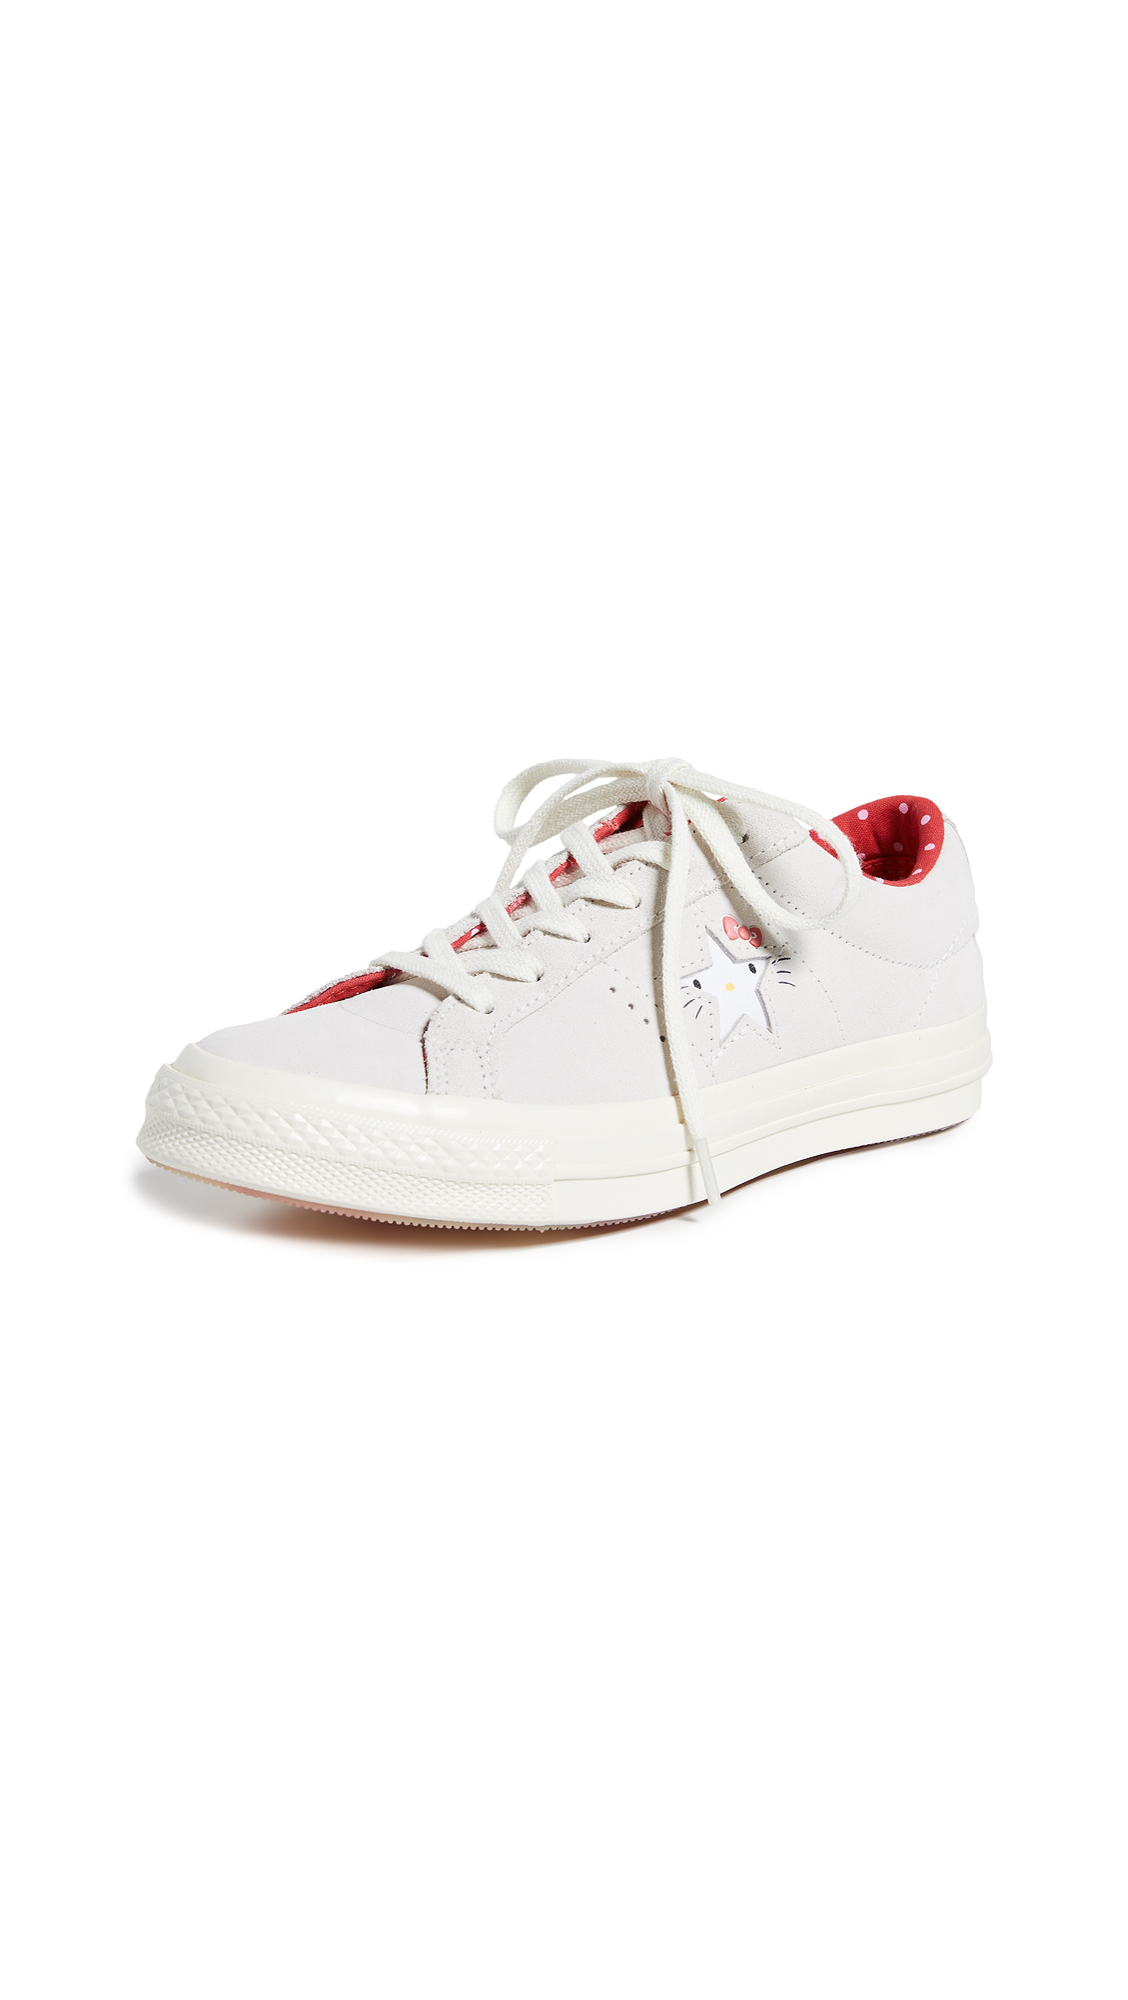 Converse HELLO KITTY ONE STAR SNEAKERS